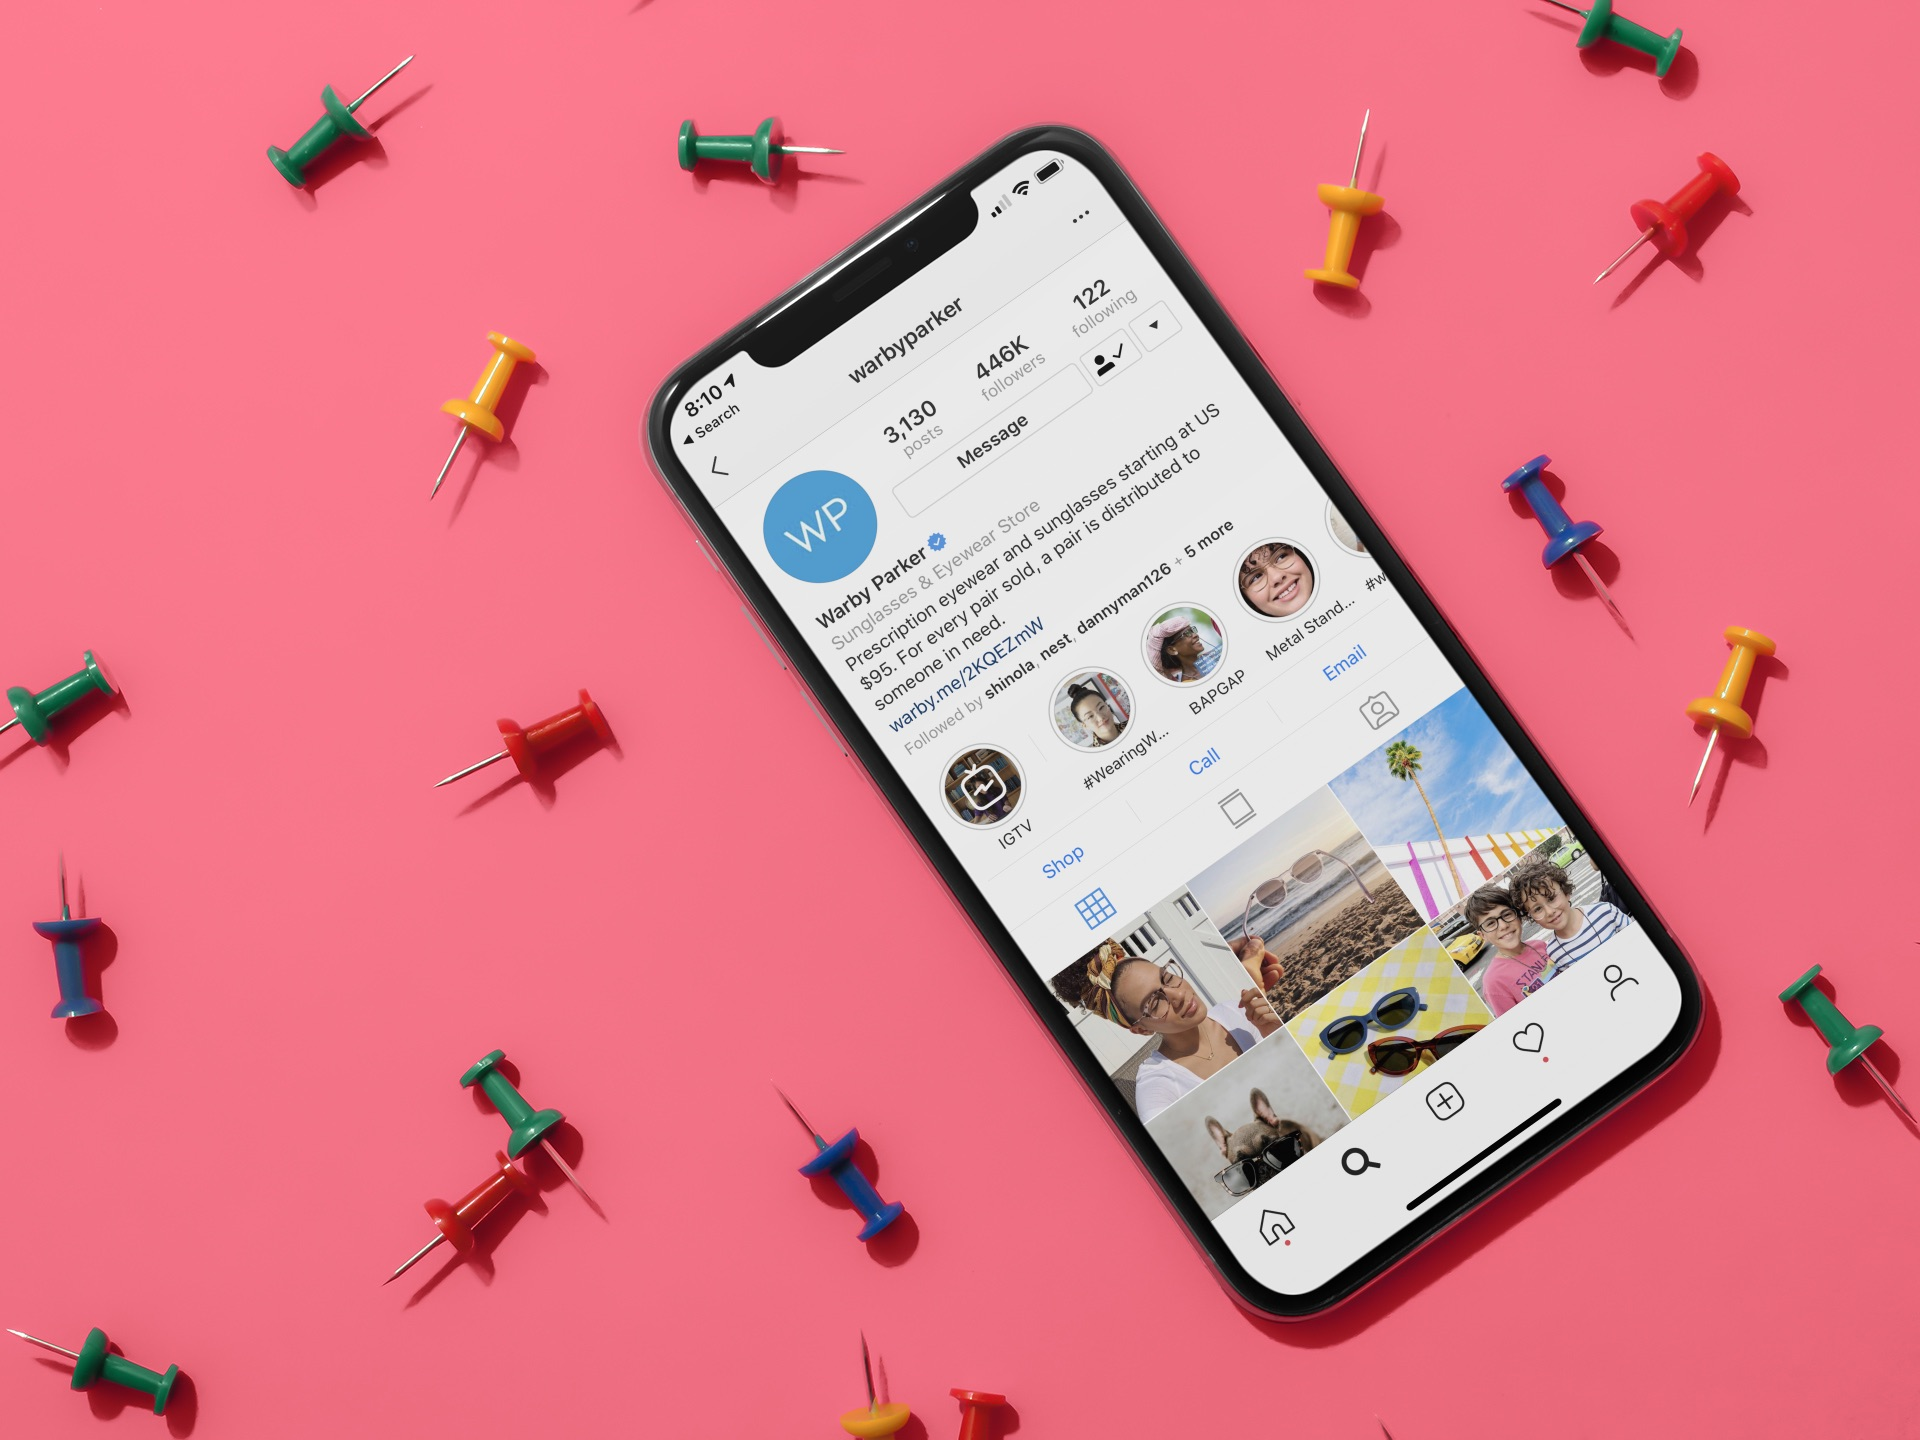 IG Shopping Is A Dedicated Merchant App From Instagram